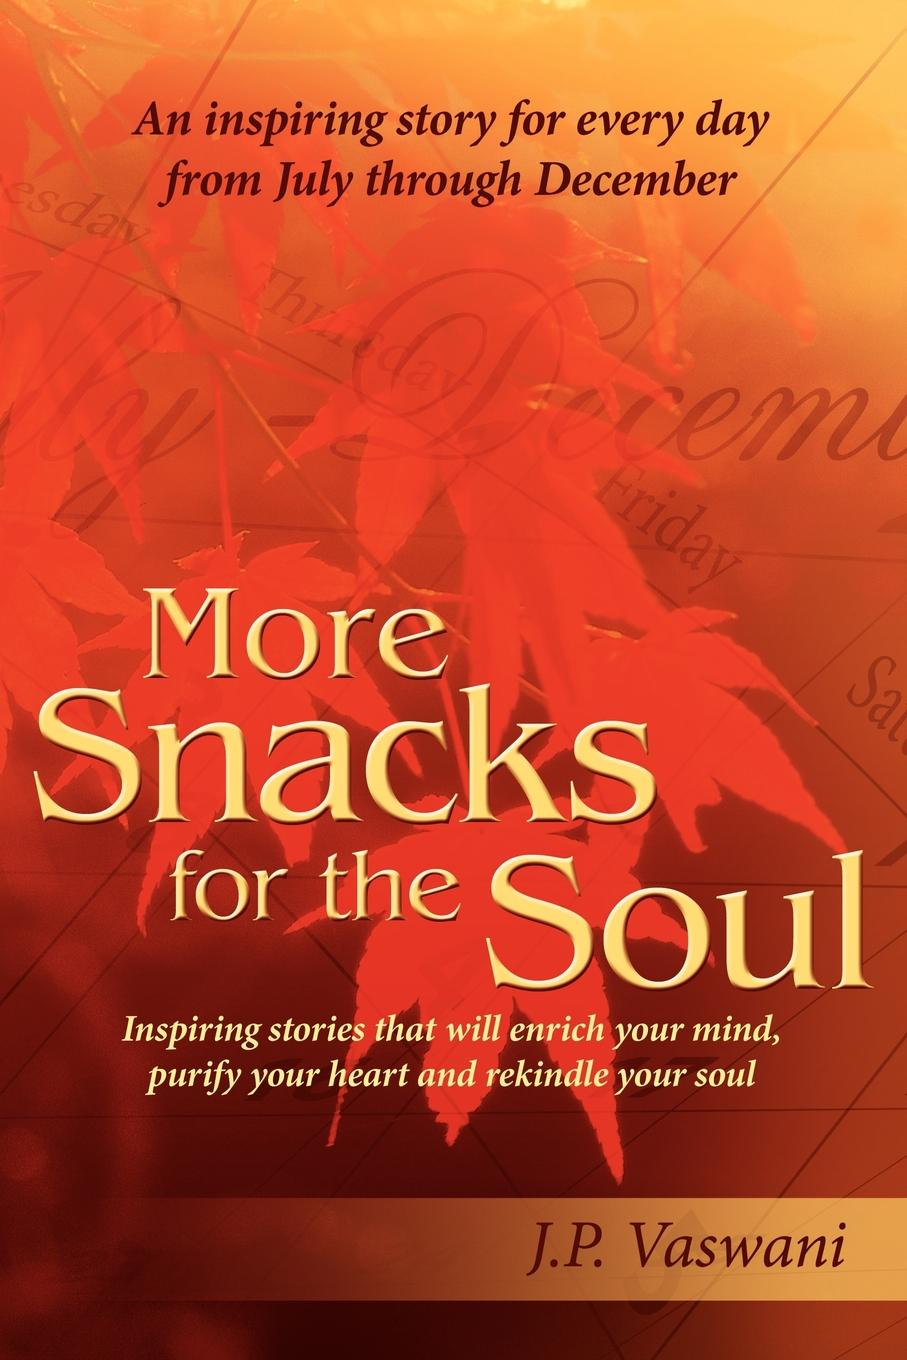 лучшая цена J.P. Vaswani More Snacks for the Soul. Inspiring stories that will enrich your mind, purify your heart and rekindle your soul